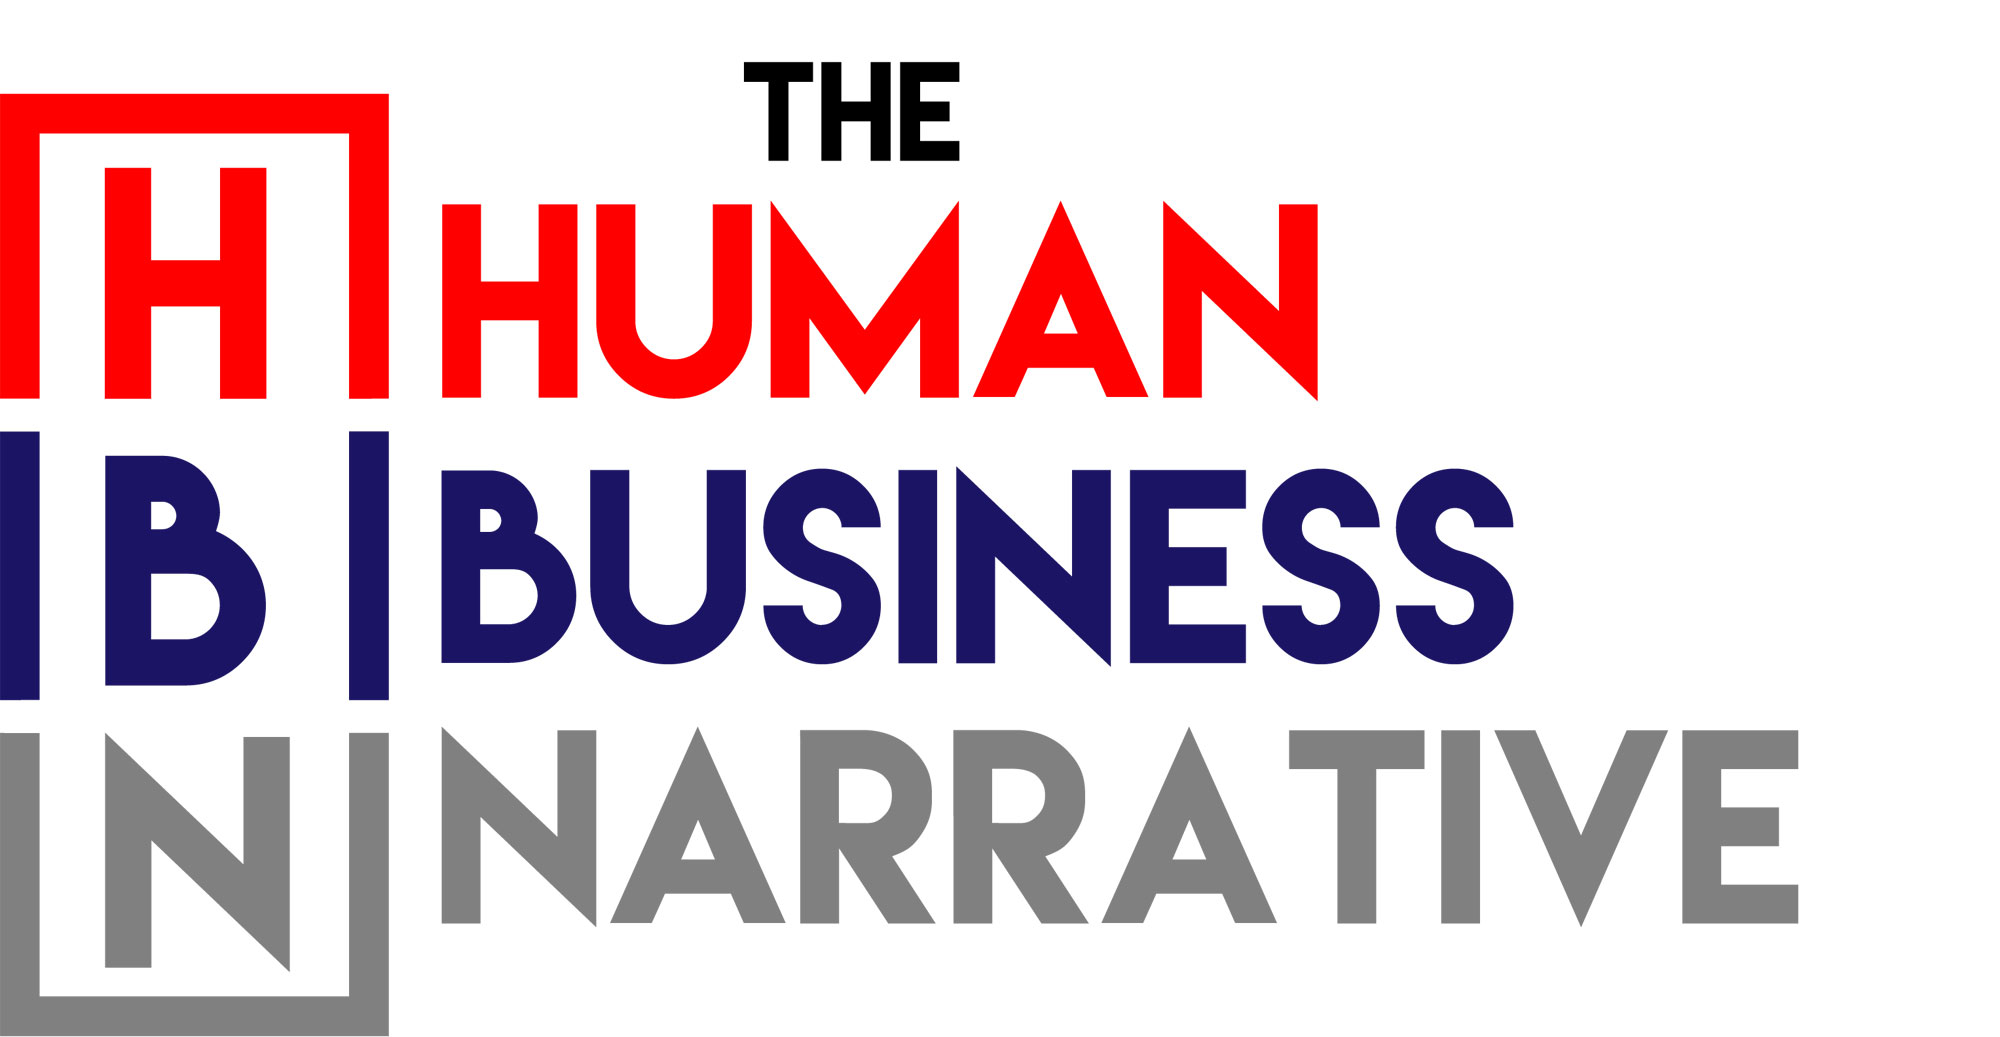 The Human Business Narrative